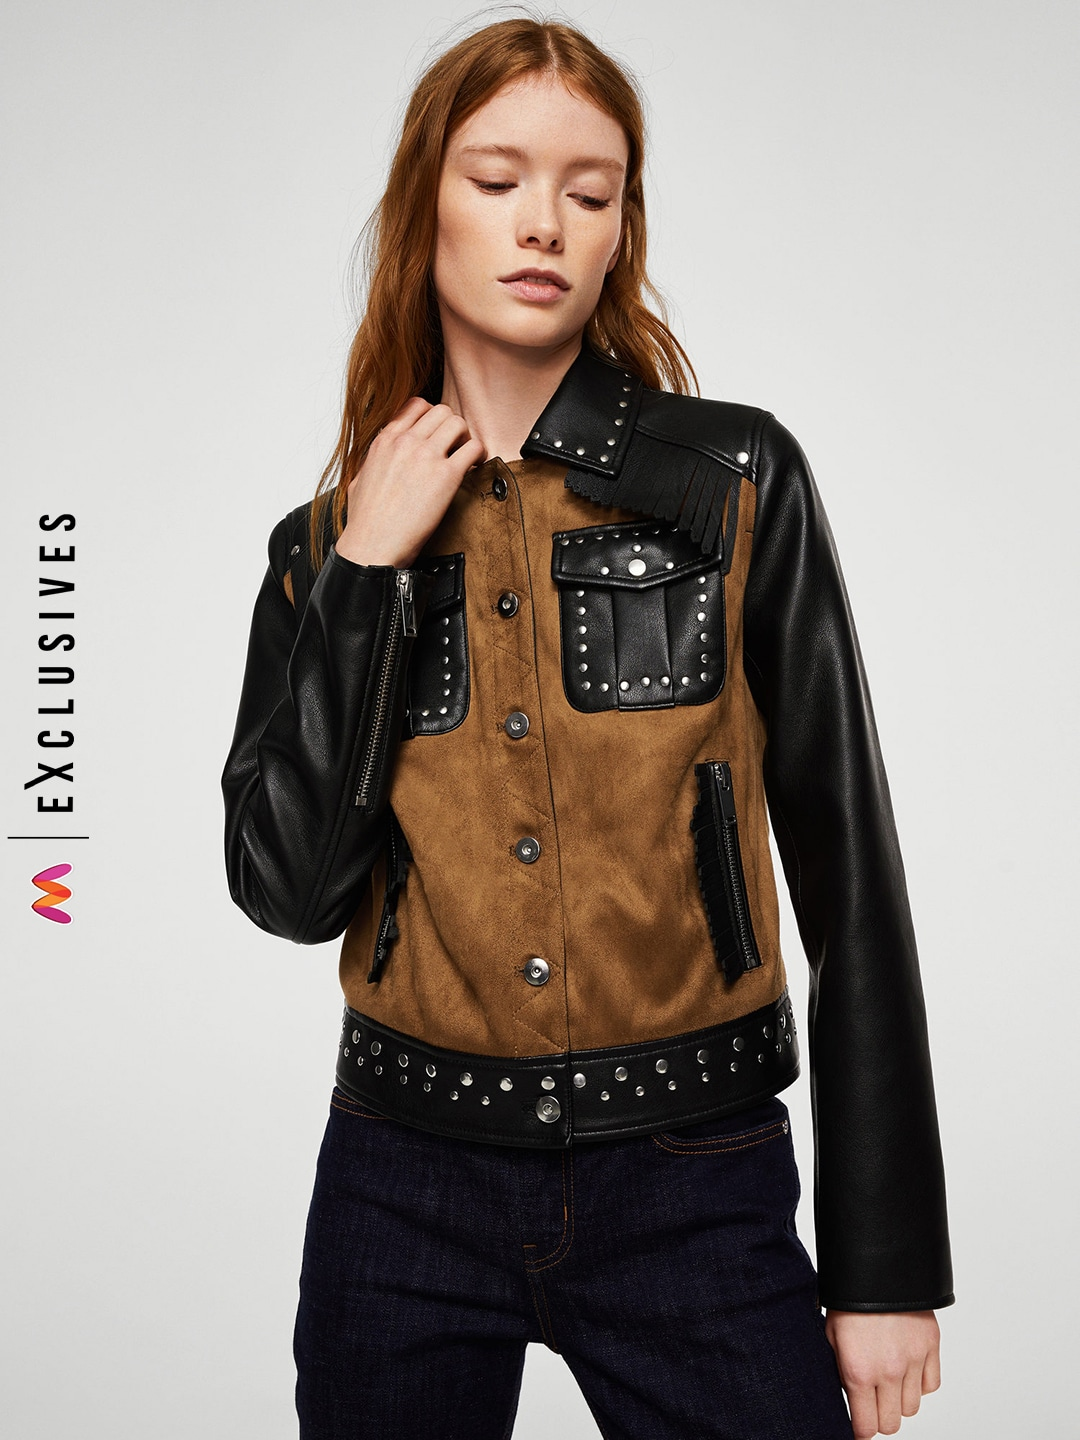 Mango Black Leather Jacket For Women Price In India On 20th January